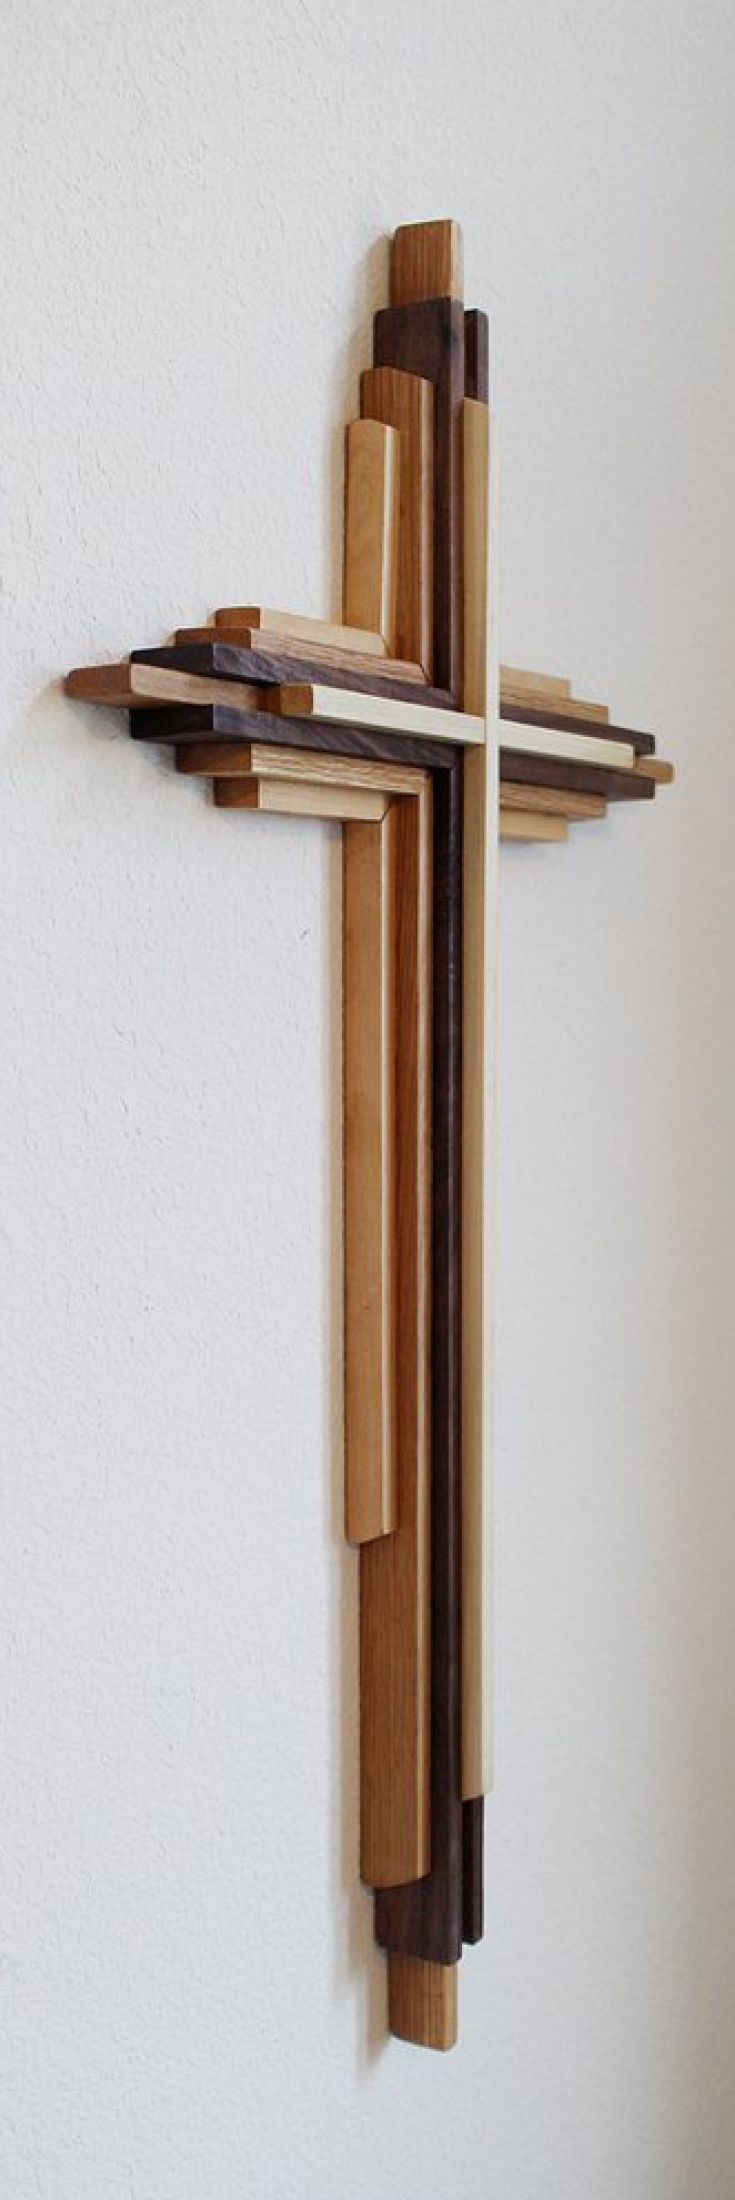 I love this. I will make this for Christmas. http://profitable-woodworking.digimkts.com/ Its surprising how big these actually are. Easy to learn and easy to do Been needing wood projects !!! http://teds-woodworking.digimkts.com/